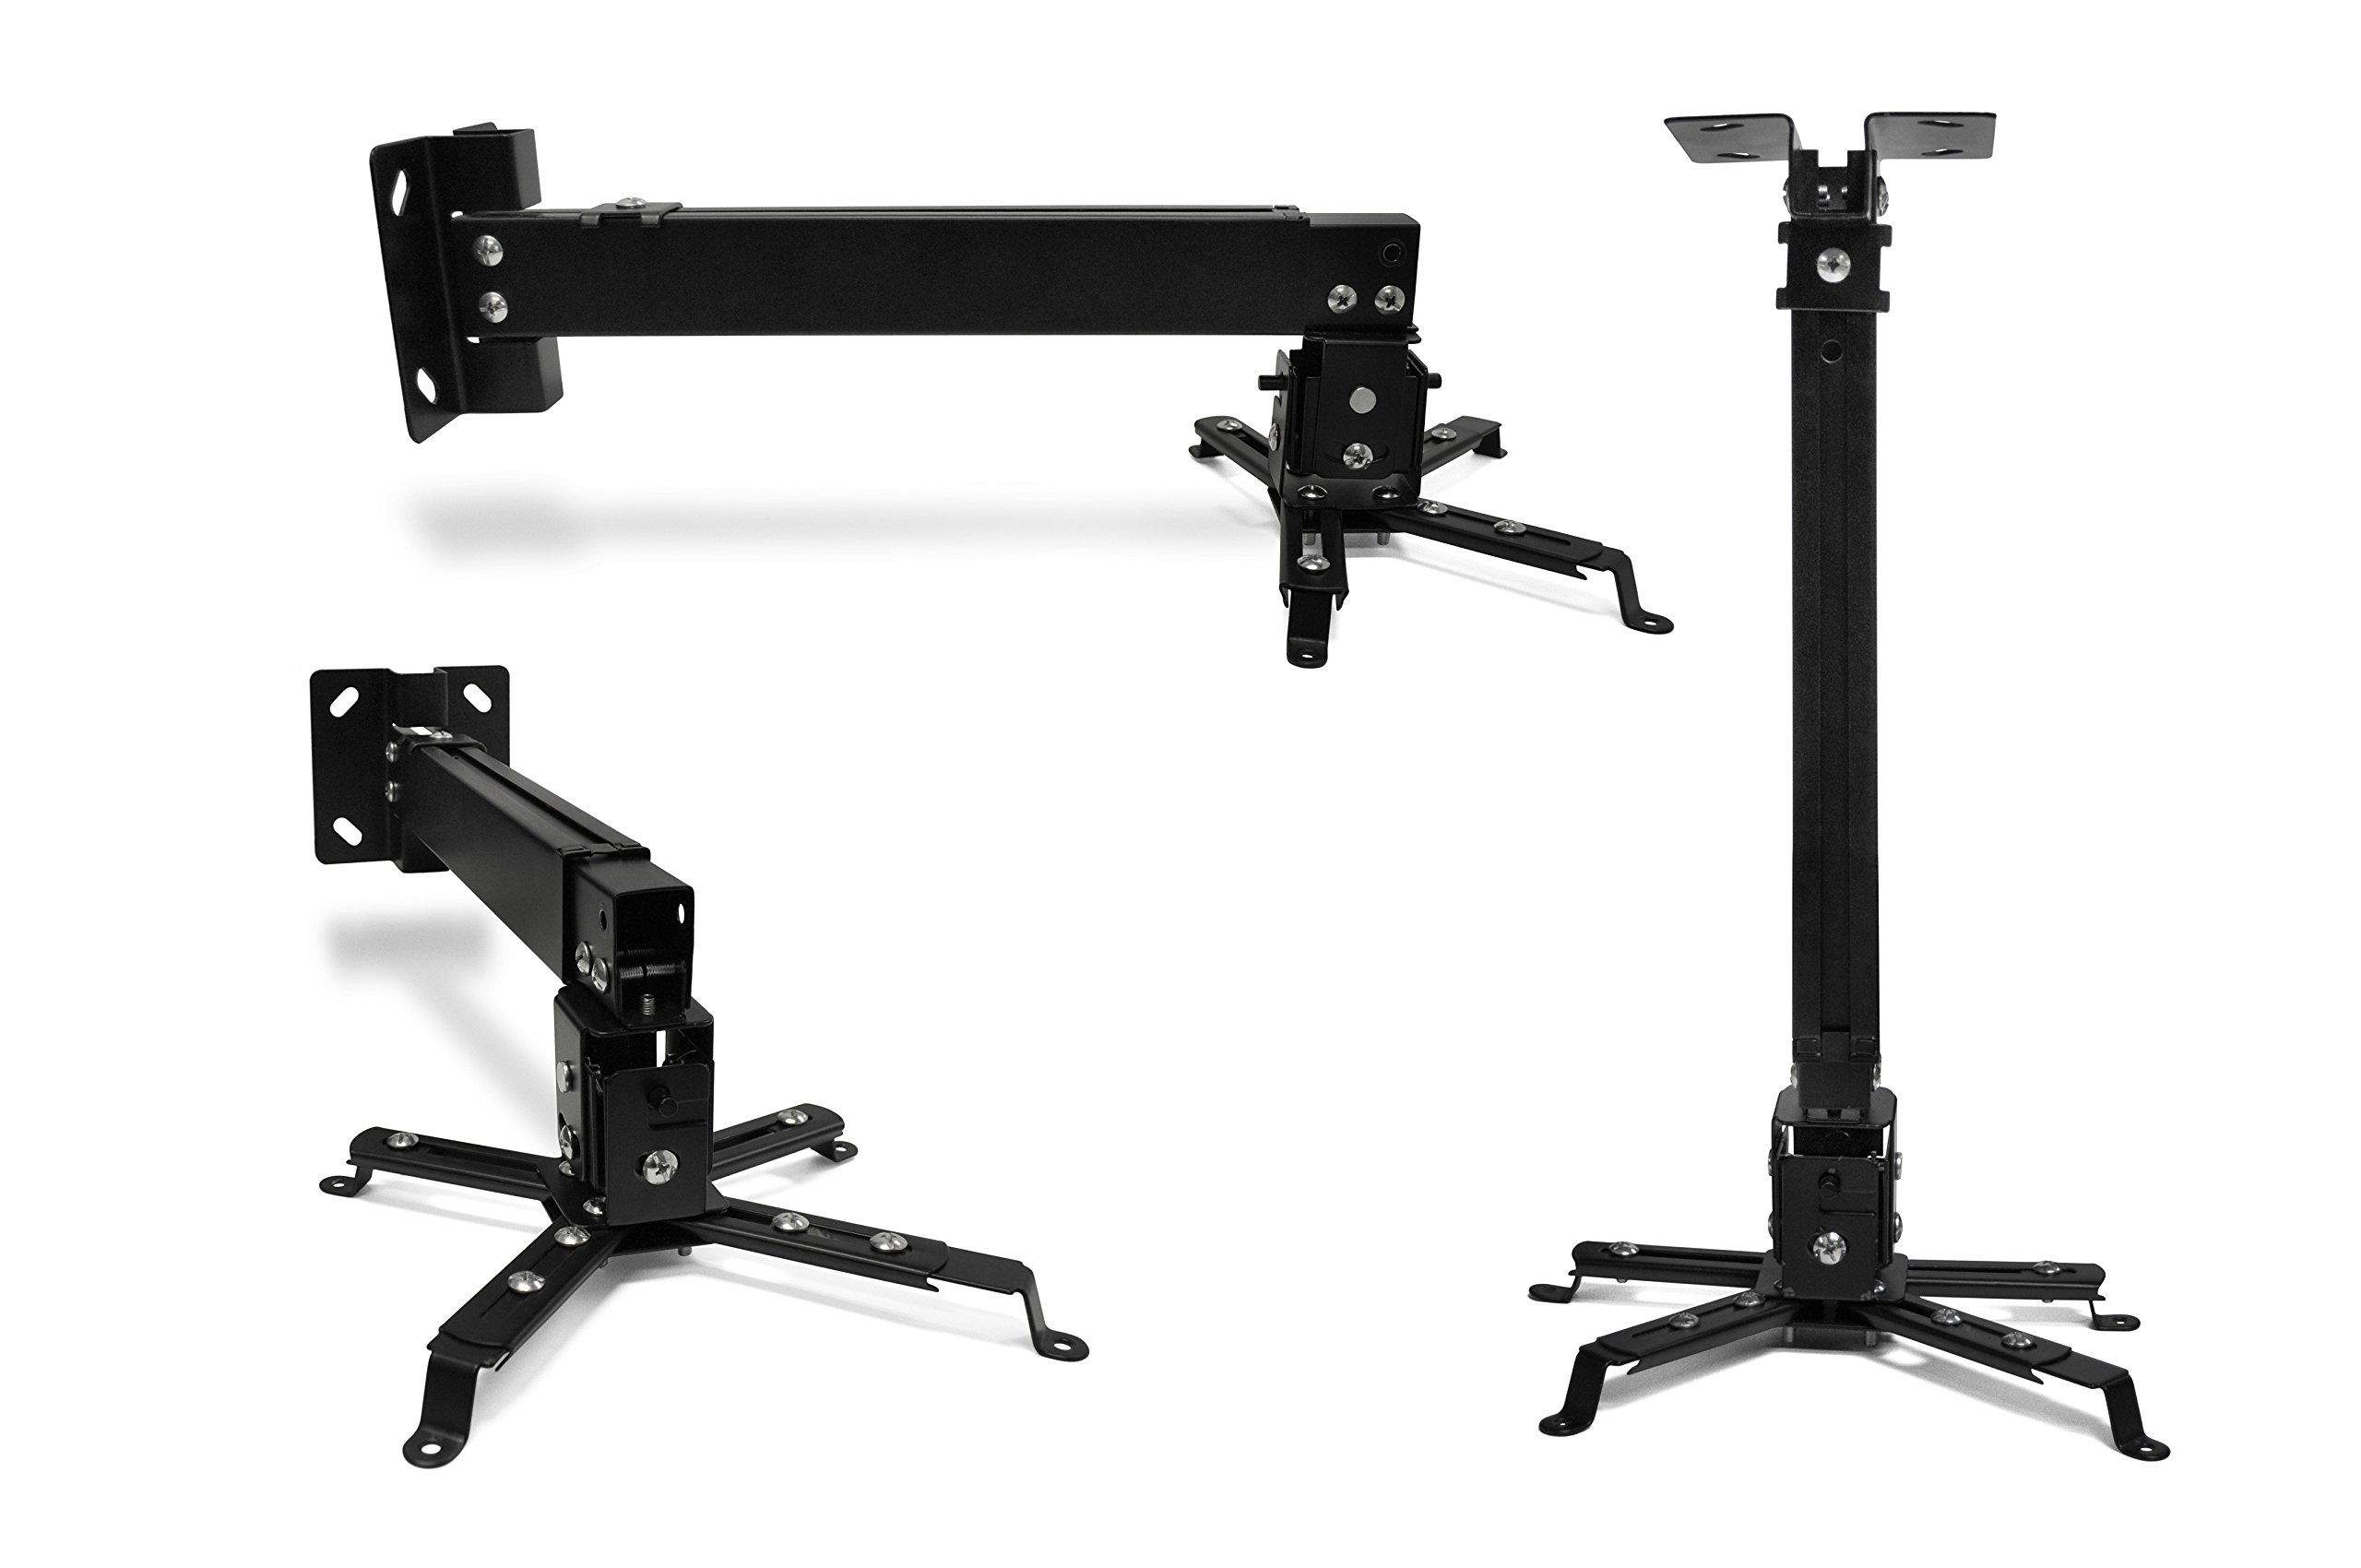 Universal Home Theater Projector Ceiling Mount with Adjustable Tilt and Swivel Arm (P-MOUNT-BL)